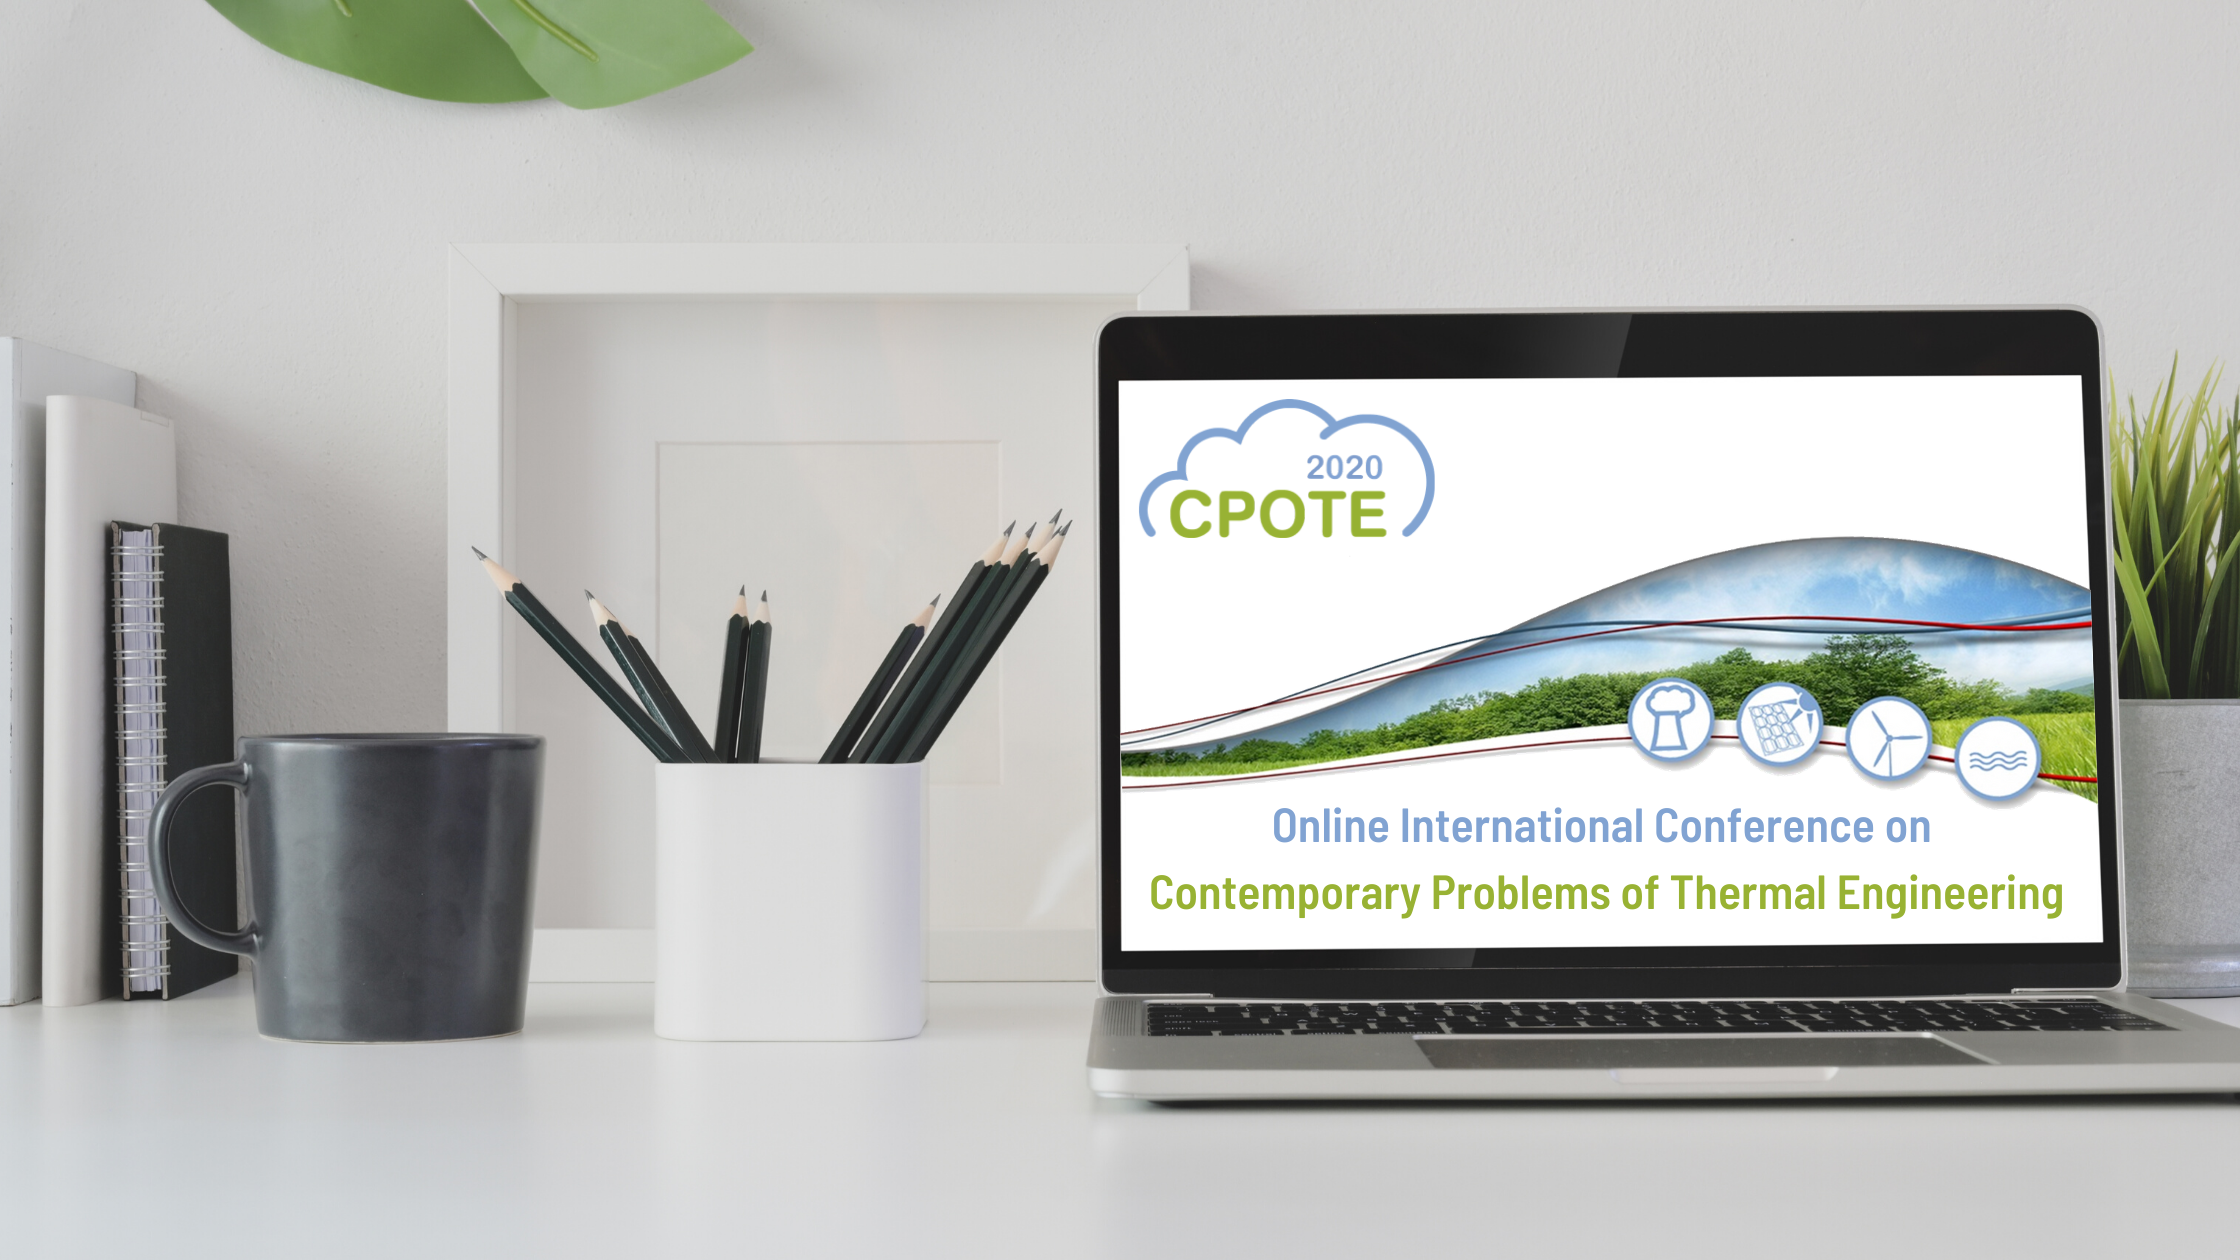 CPOTE 2020 Online